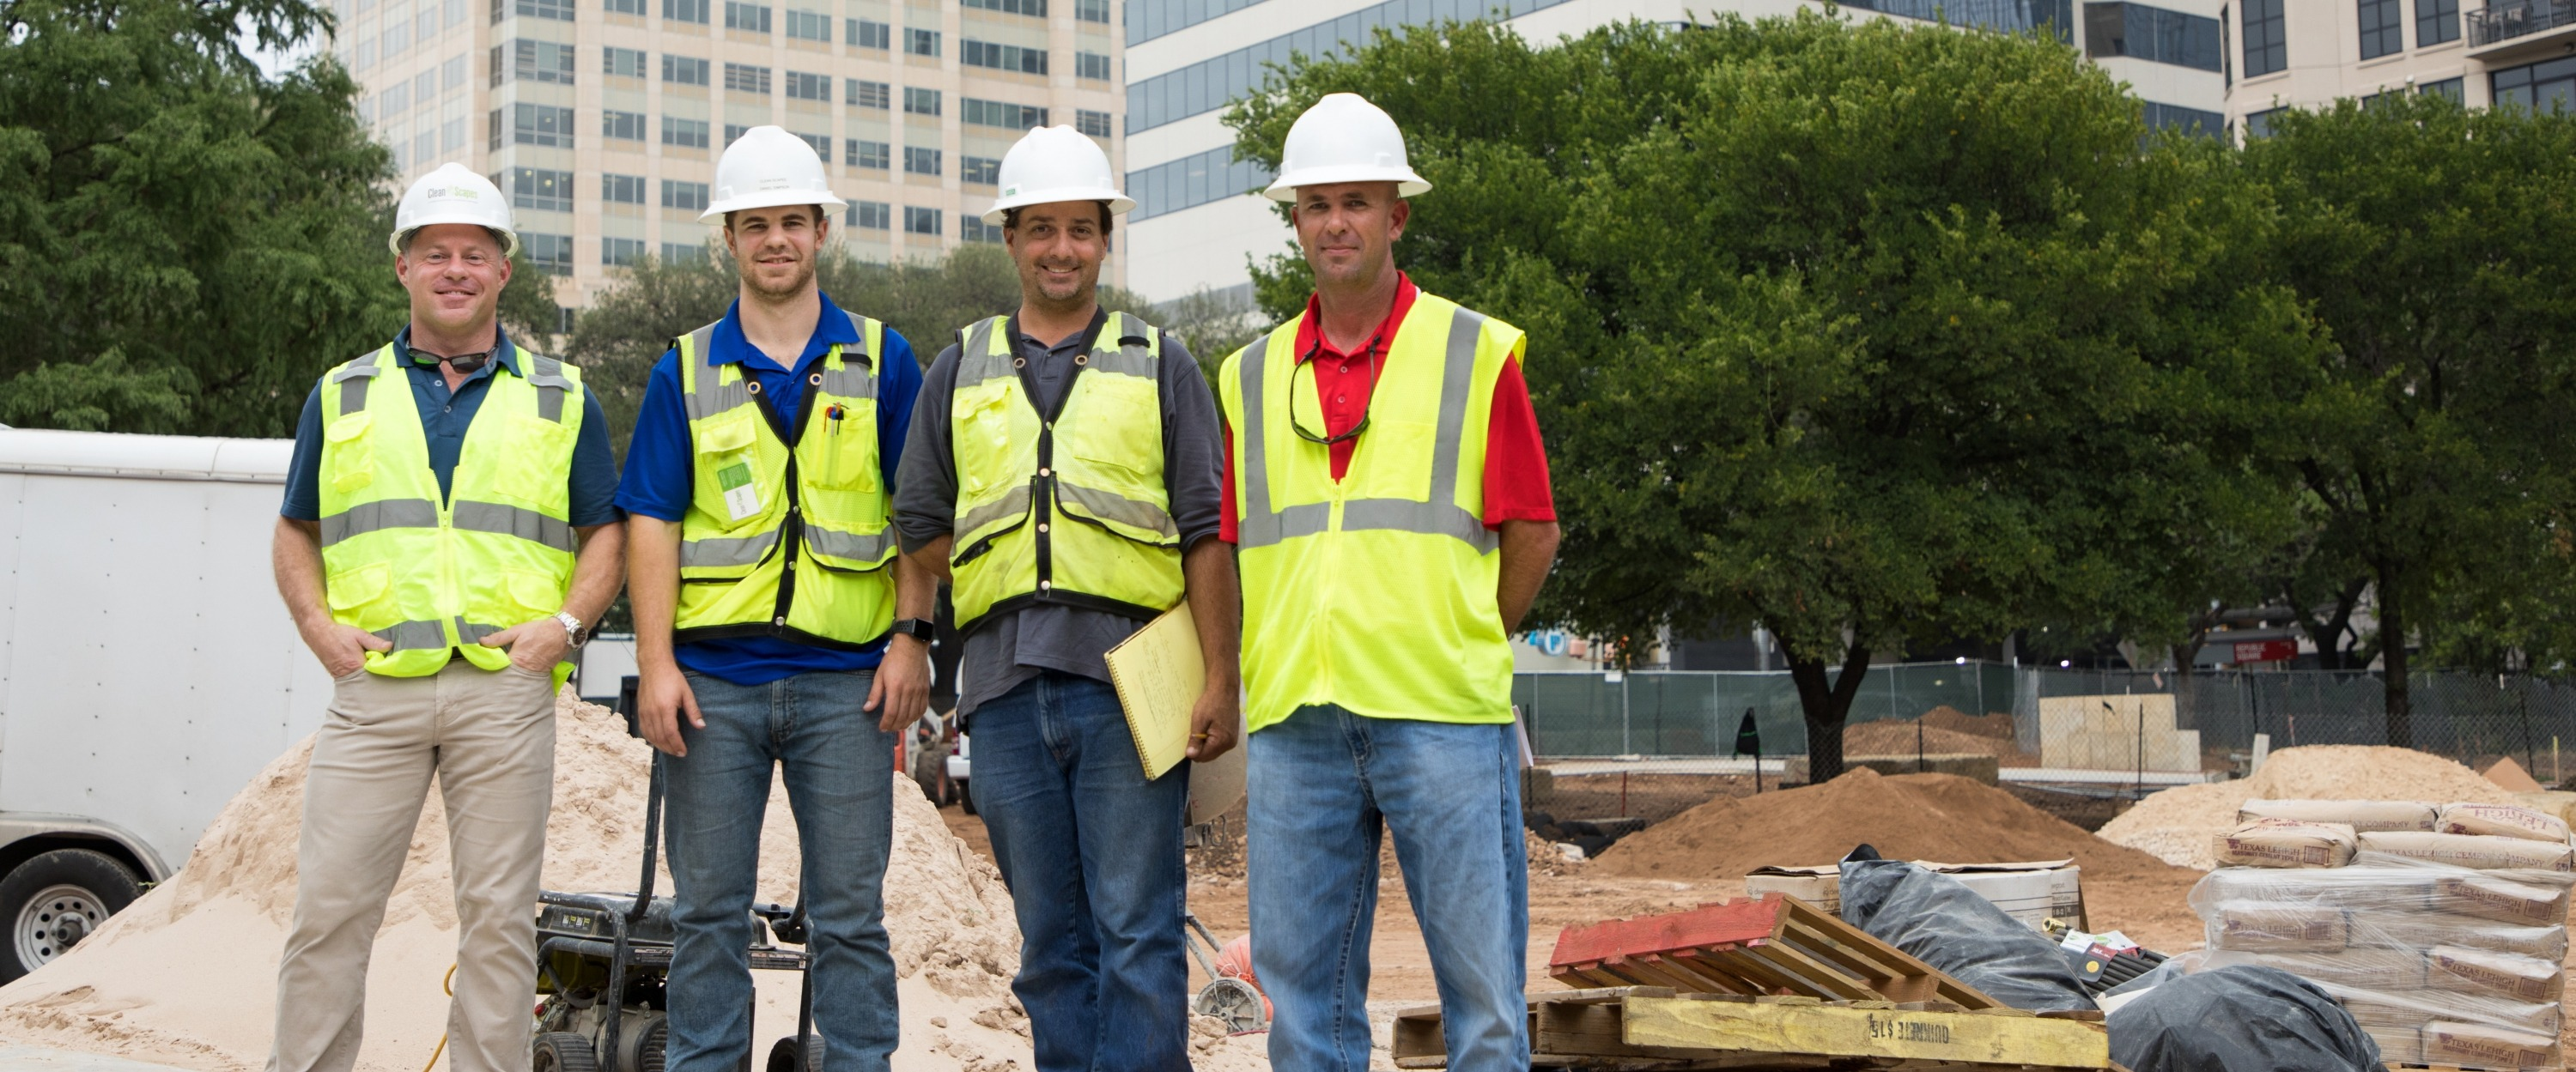 Members of Clean Scapes posing in front of the construction of Republic Square Park